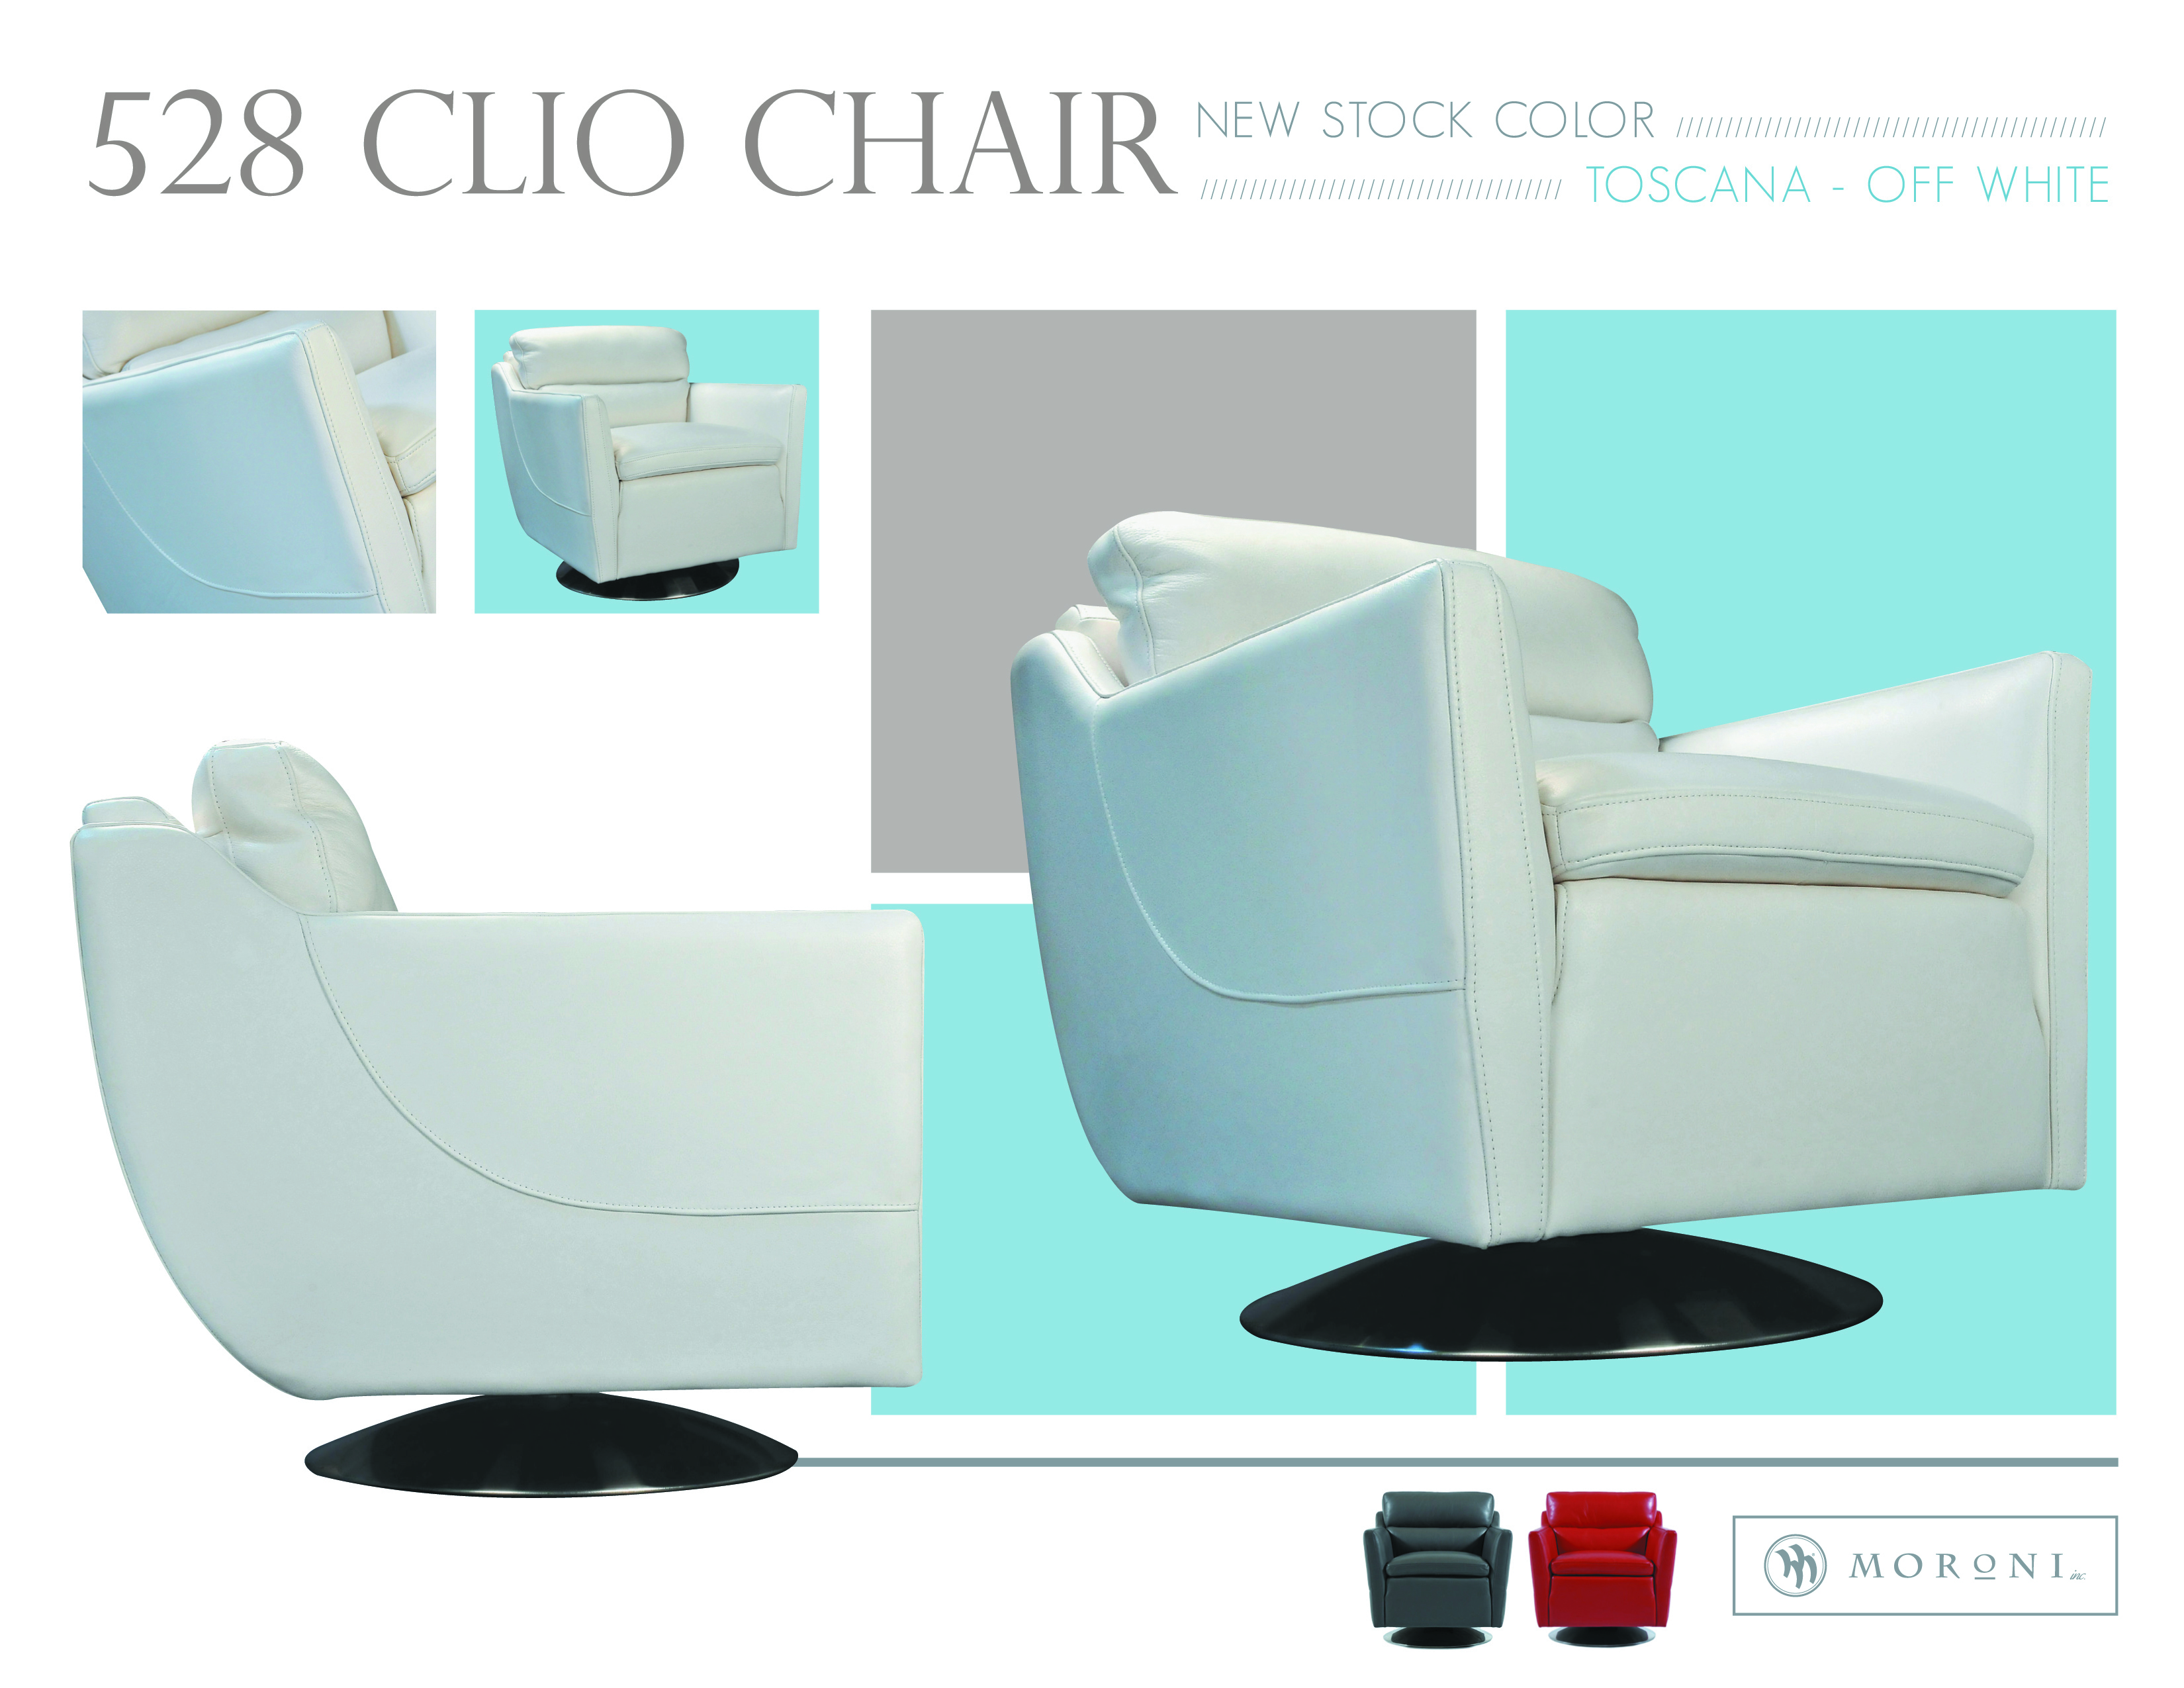 Marvelous Clio Contemporary Chair Off White 52806D2007 Sofas And Ncnpc Chair Design For Home Ncnpcorg